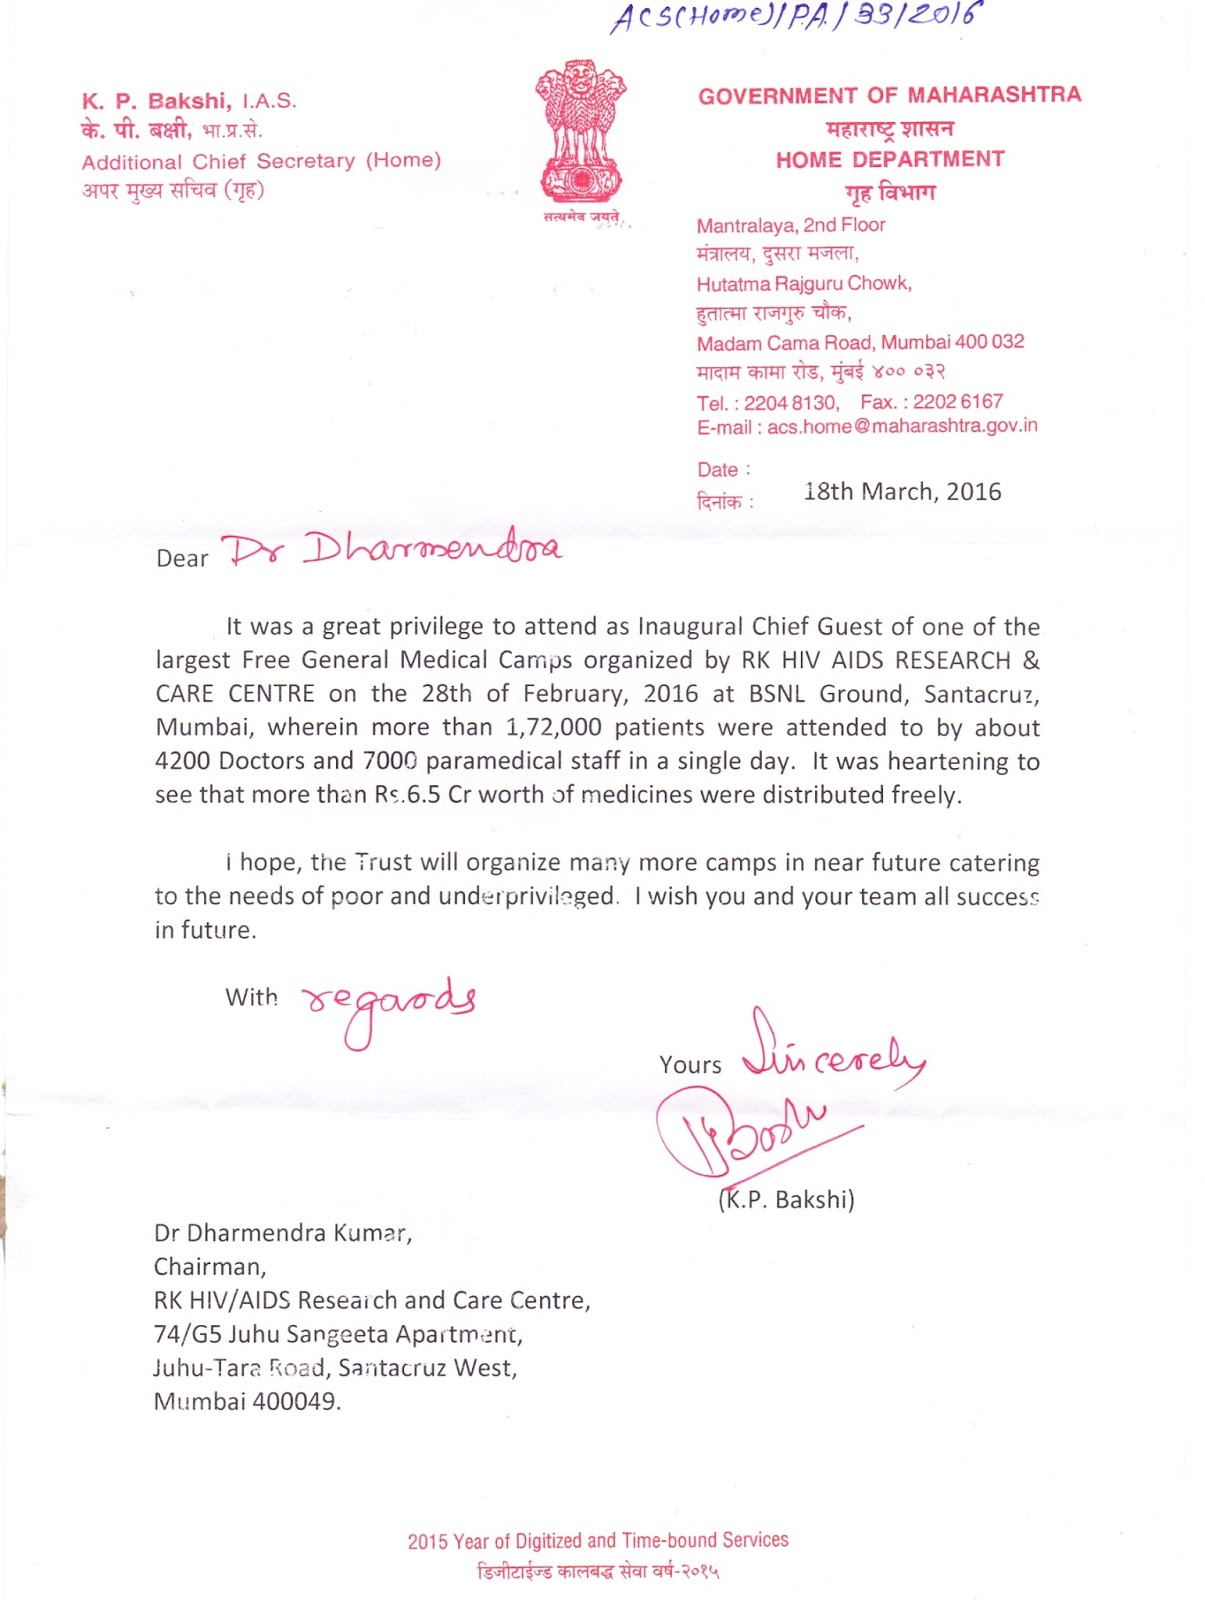 Appreciation letter to rk hiv aids research and care centre appreciation letter by shri kp bakshi ias additional chief secretary home goverment of maharashtra to rk hiv aids research and care centre for spiritdancerdesigns Images